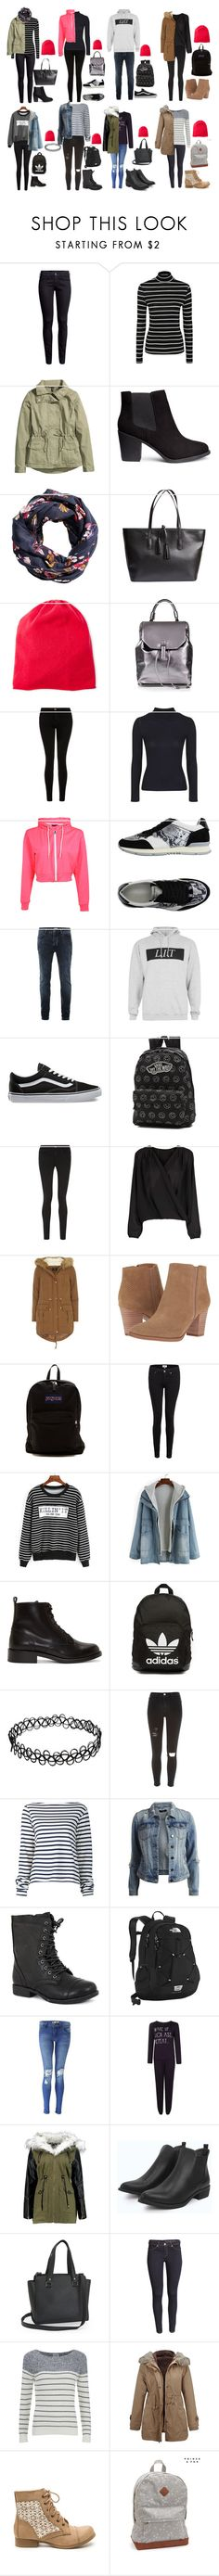 """Women's March"" by strawberryfelton on Polyvore featuring Mode, H&M, George, Fraas, Topshop, Current/Elliott, Boohoo, Giorgio Armani, Topman und Vans"